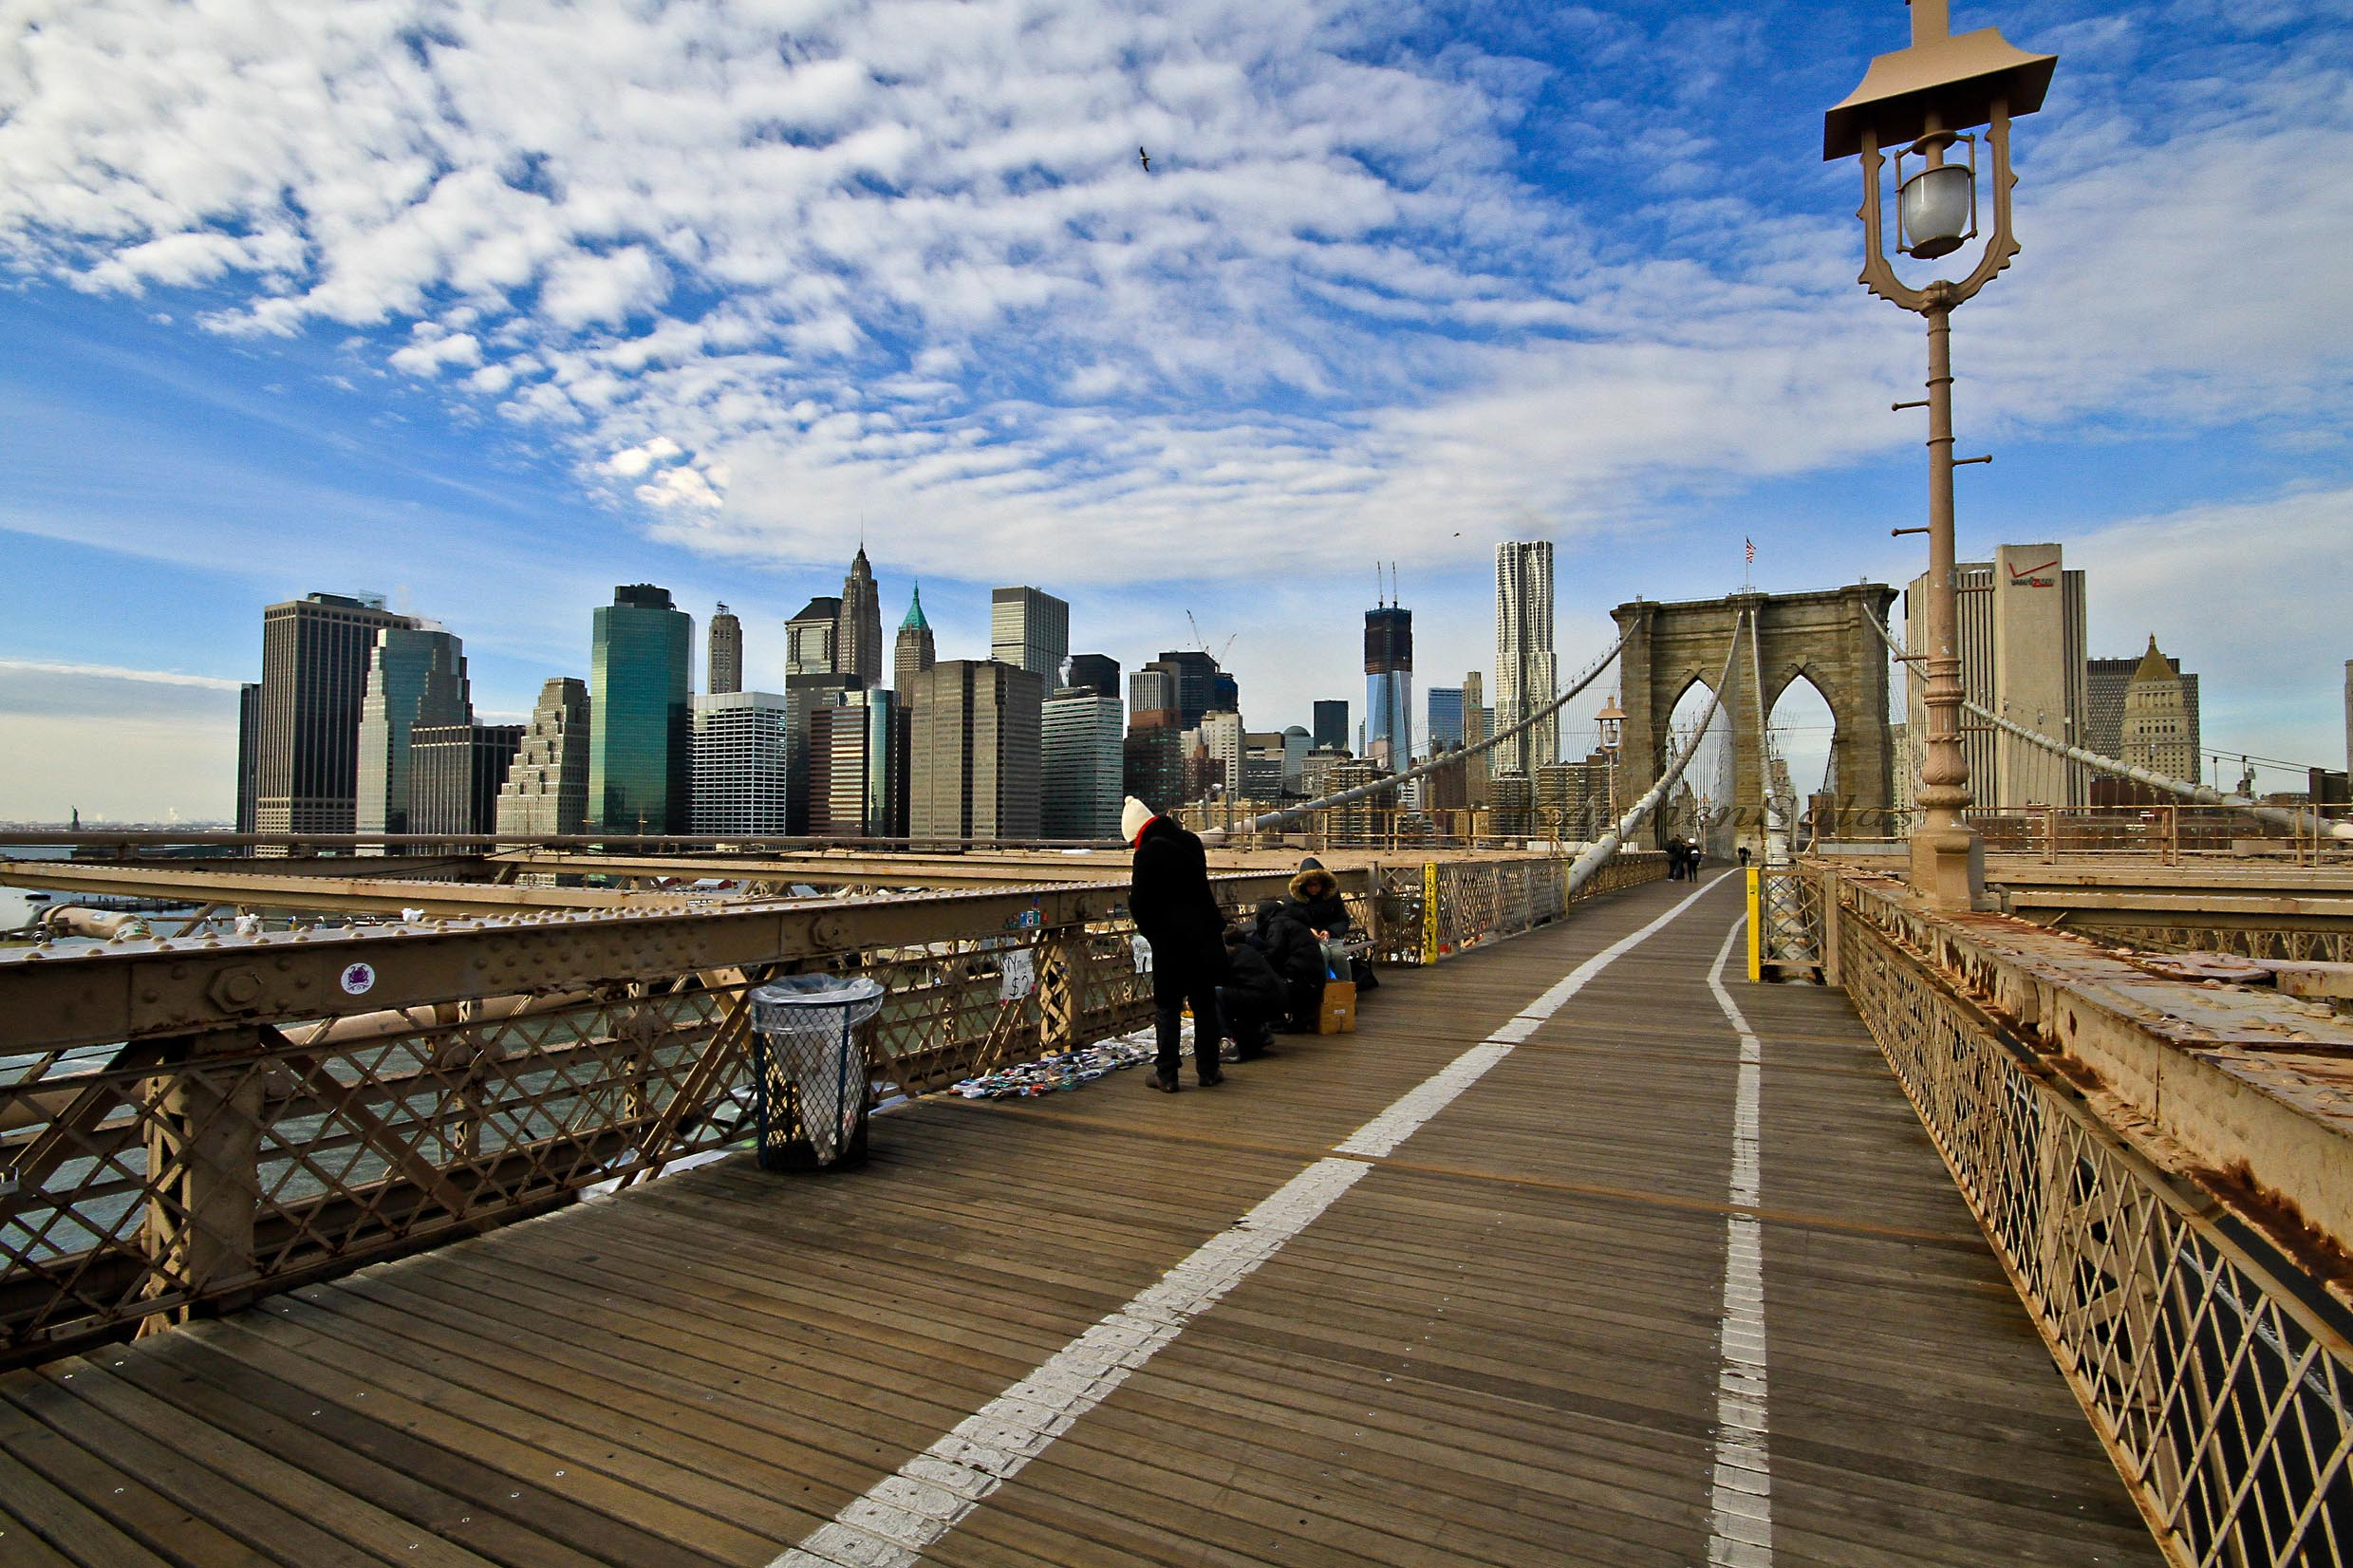 Vistas dede el puente de Brooklyn